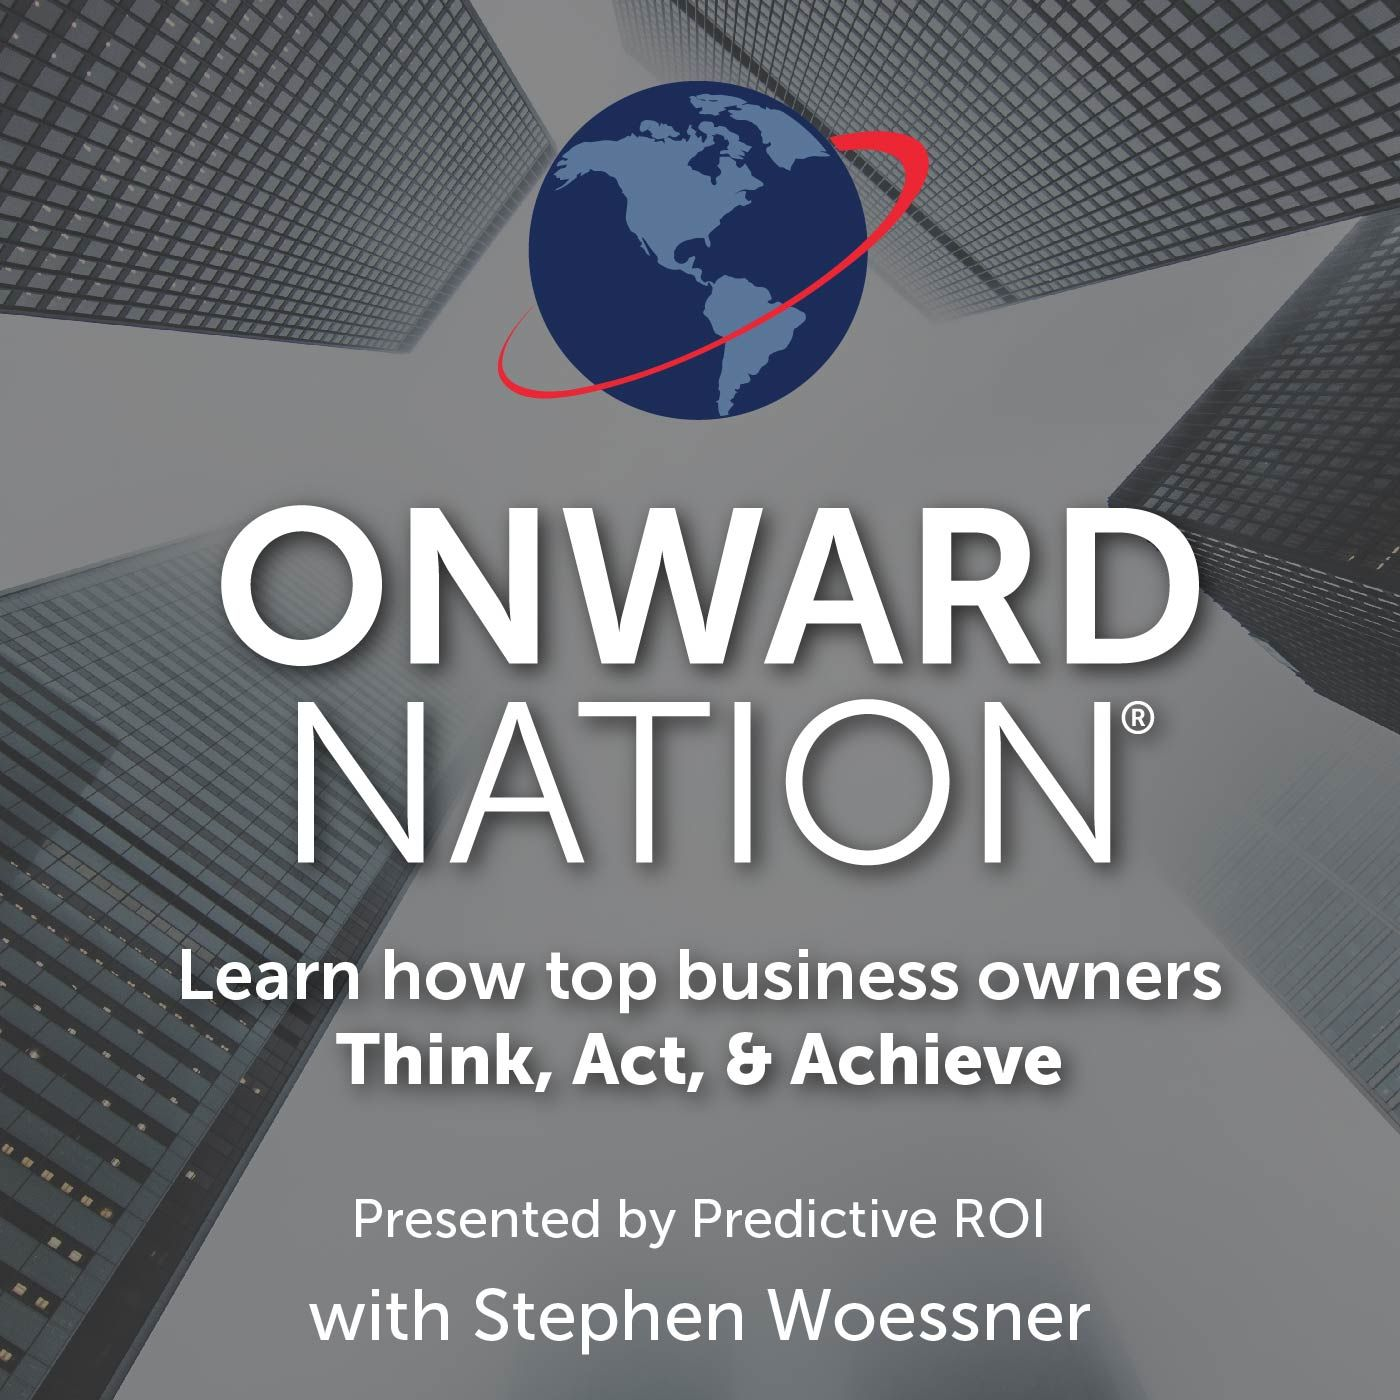 Episode 979: Building wealth from chaos, with Mitch Stephen